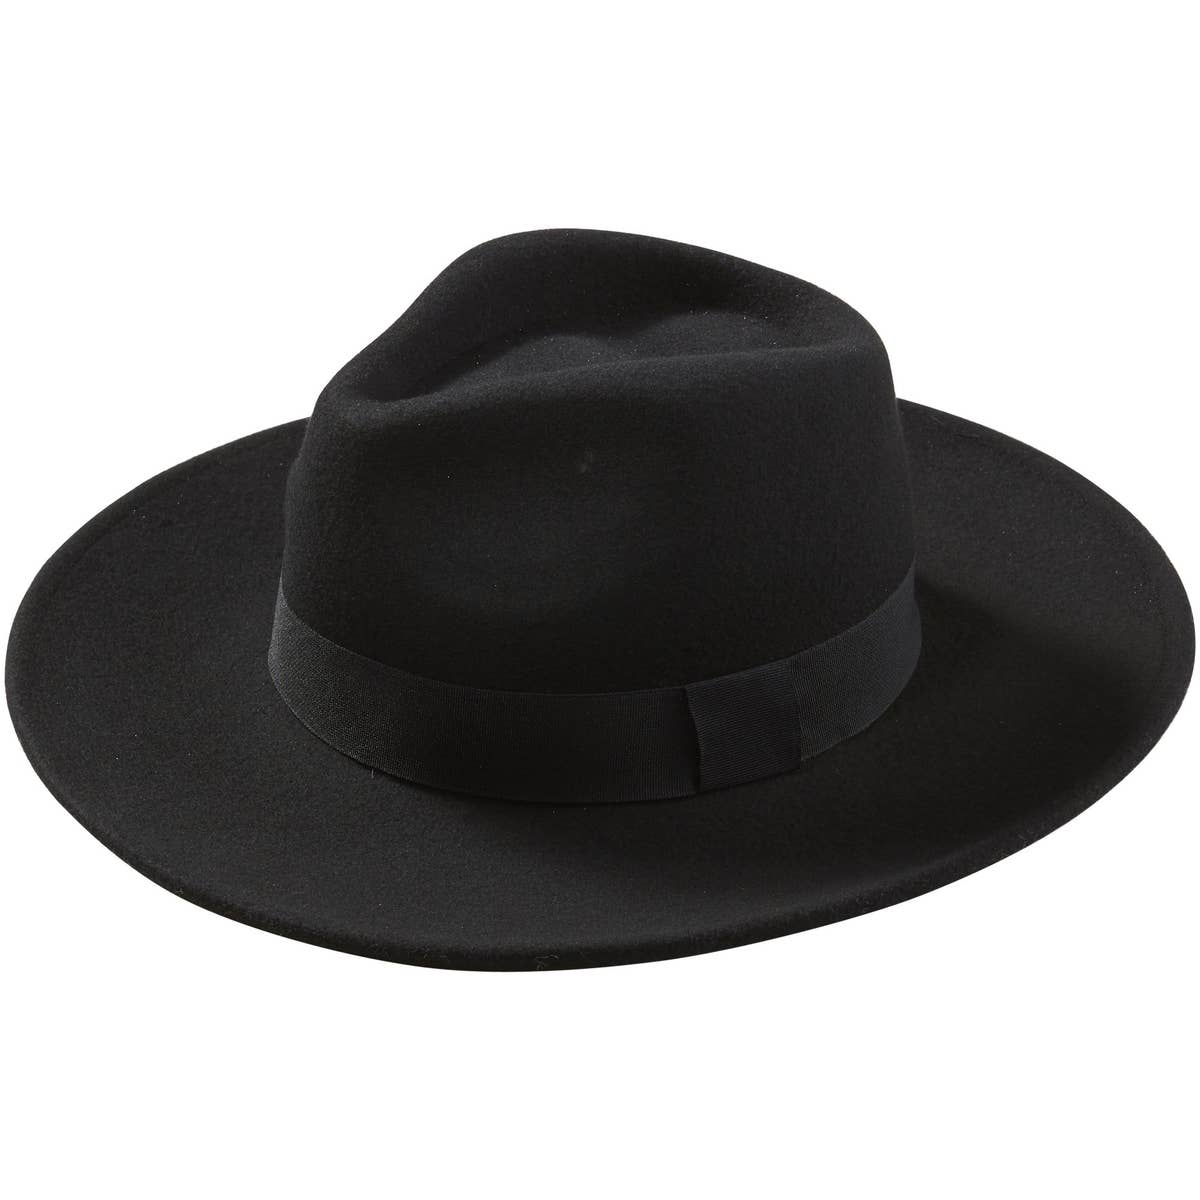 Hilary Panama hat